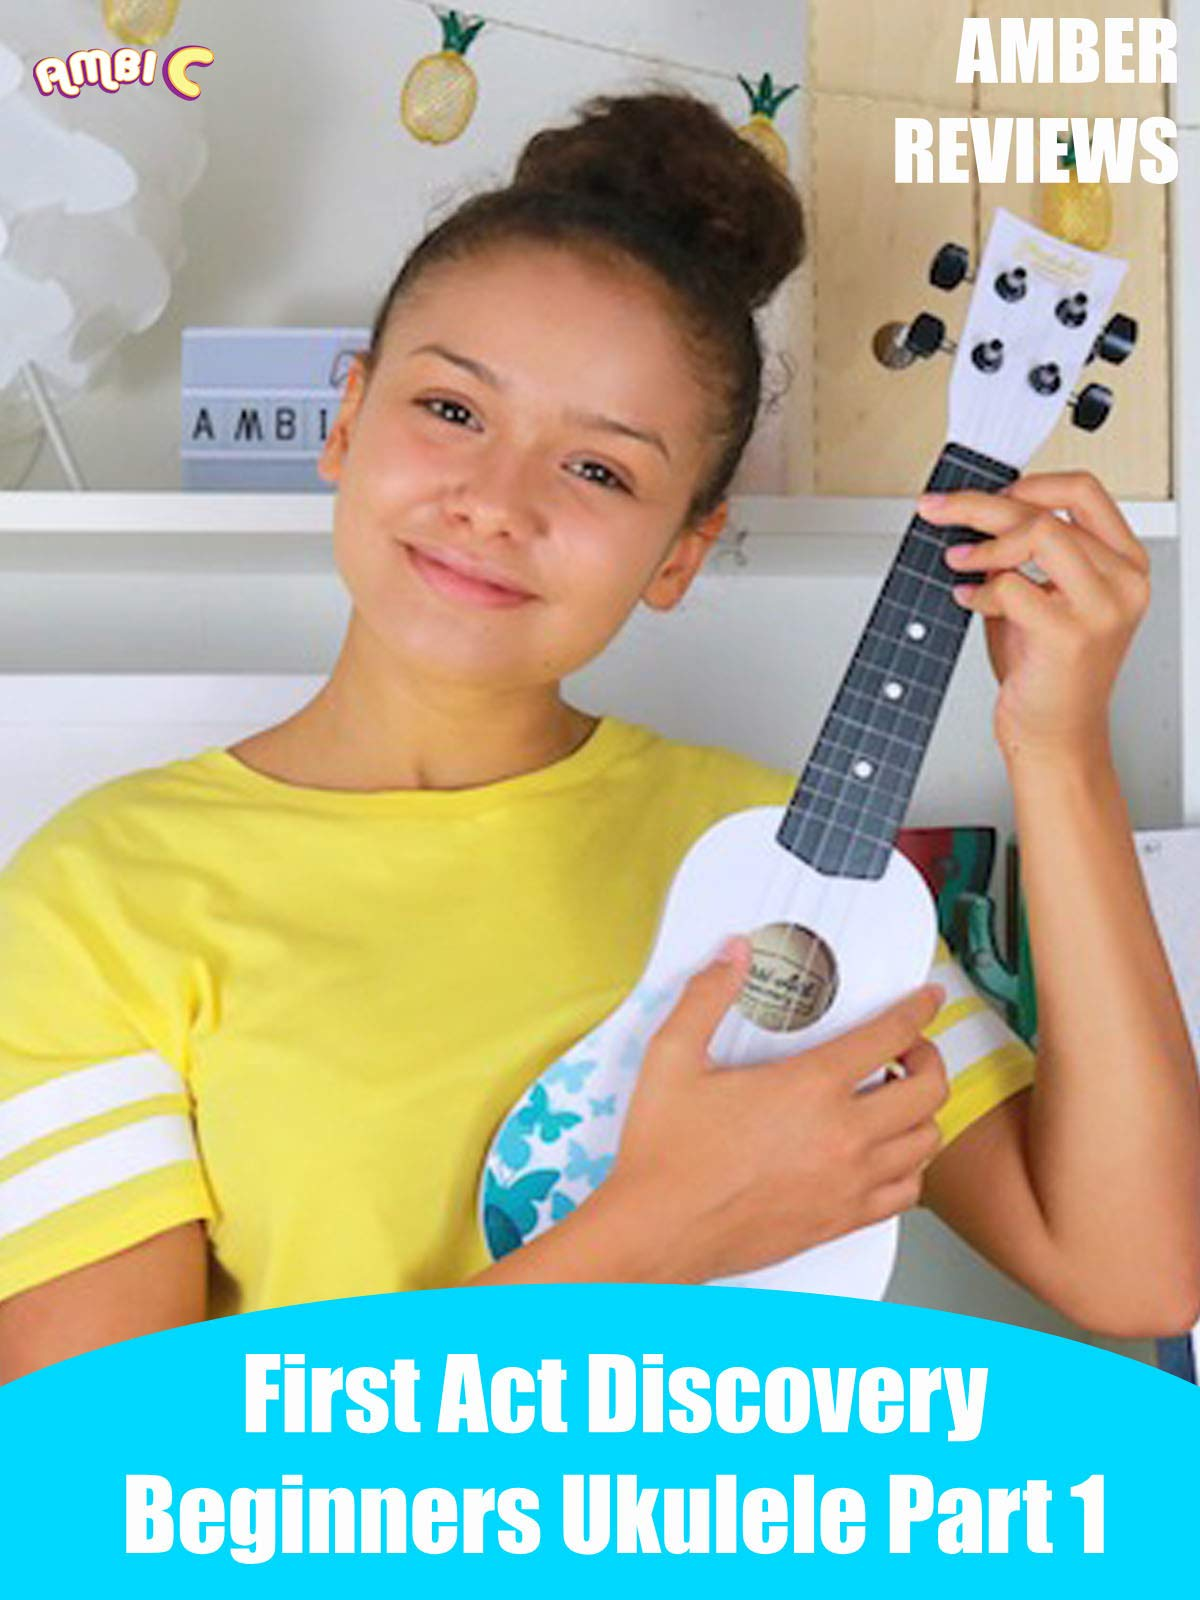 Amber Reviews First Act Discovery Beginners Ukulele Part 1